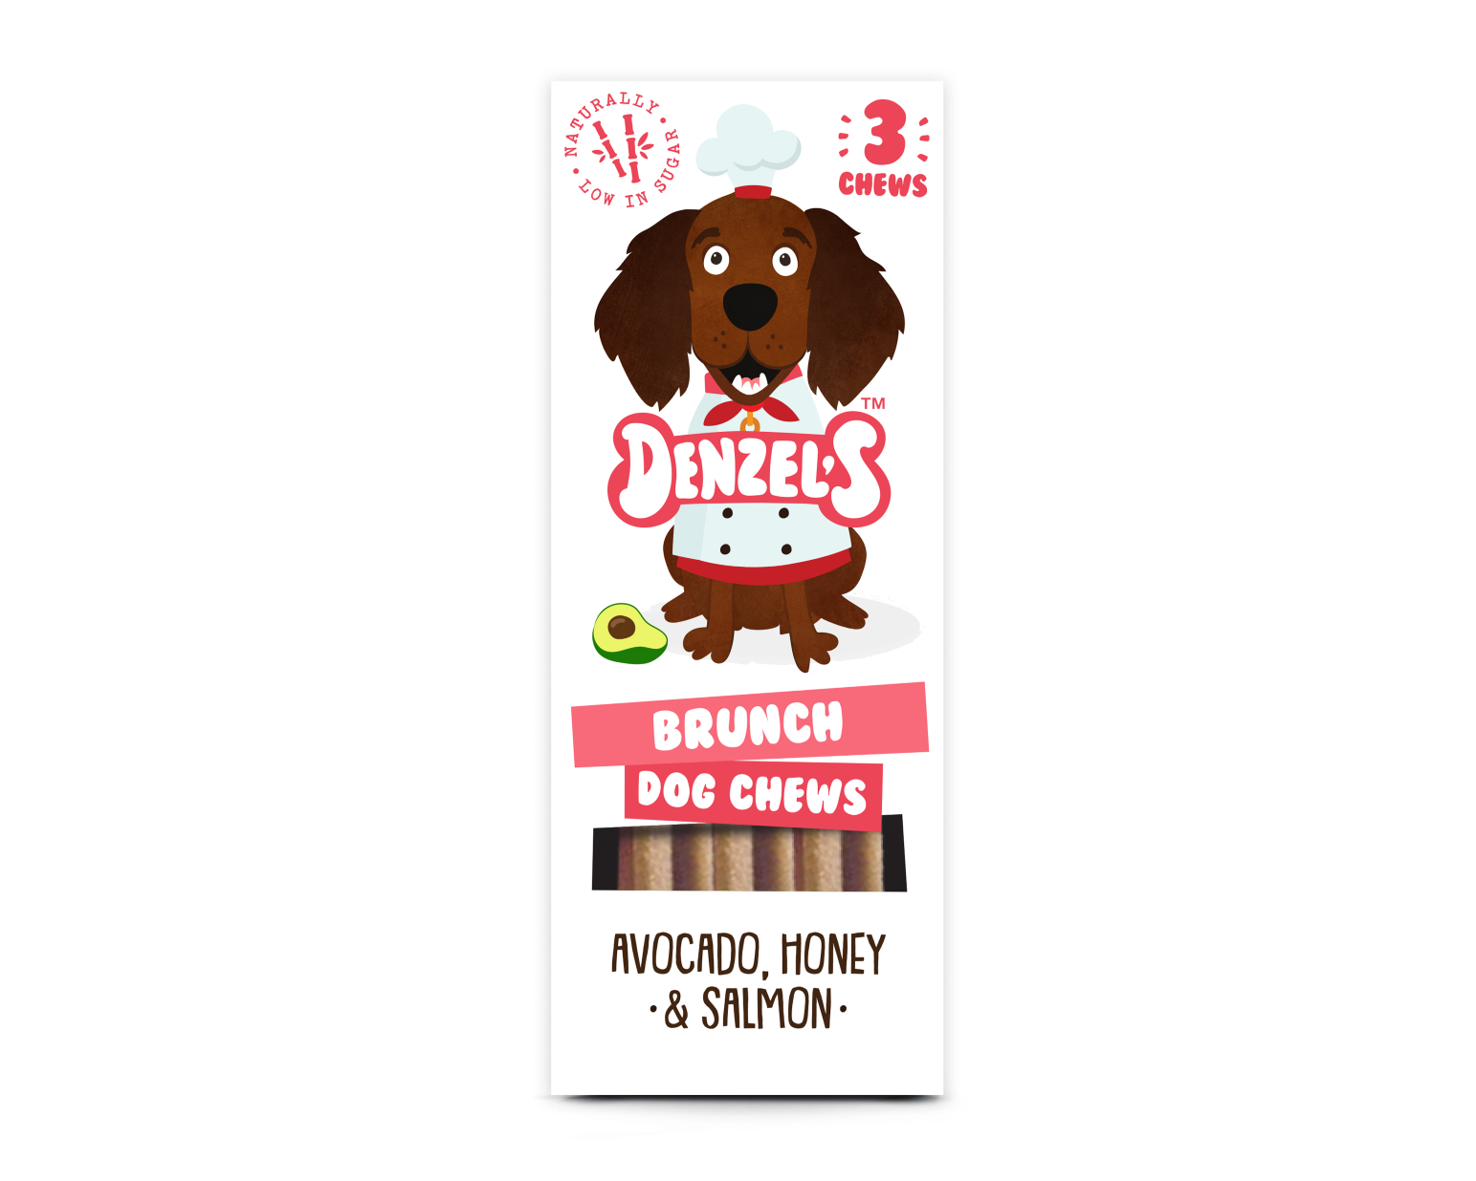 Denzels Brunch chews